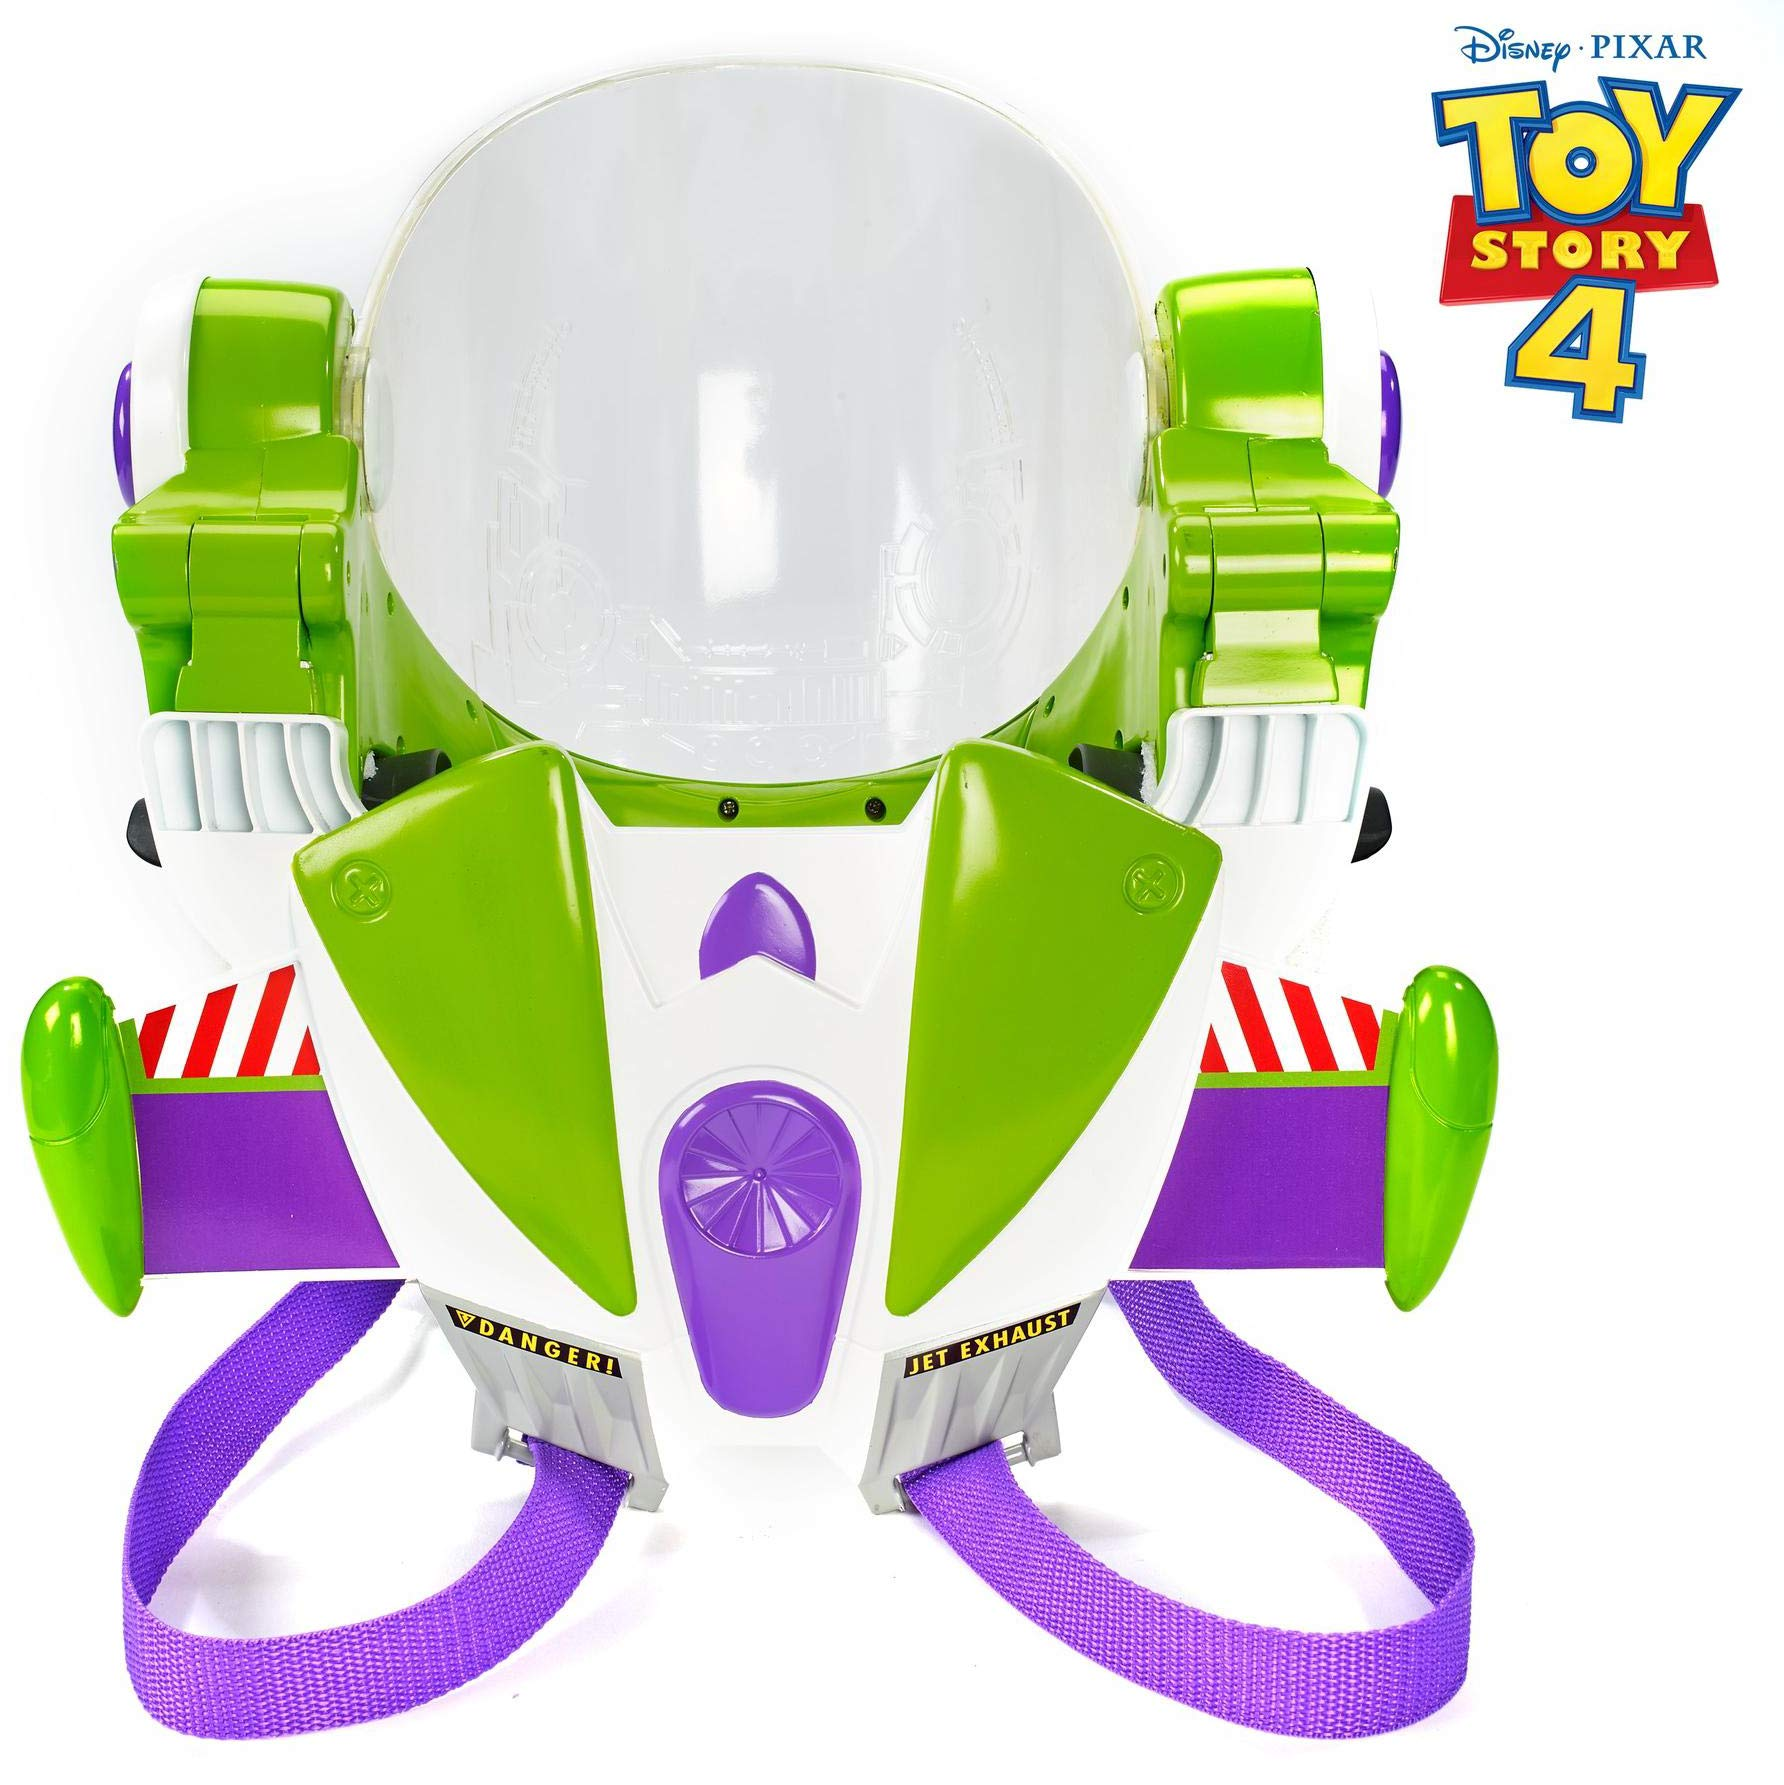 Toy Story Disney Pixar 4 Buzz Lightyear Space Ranger Armor with Jet Pack by Toy Story